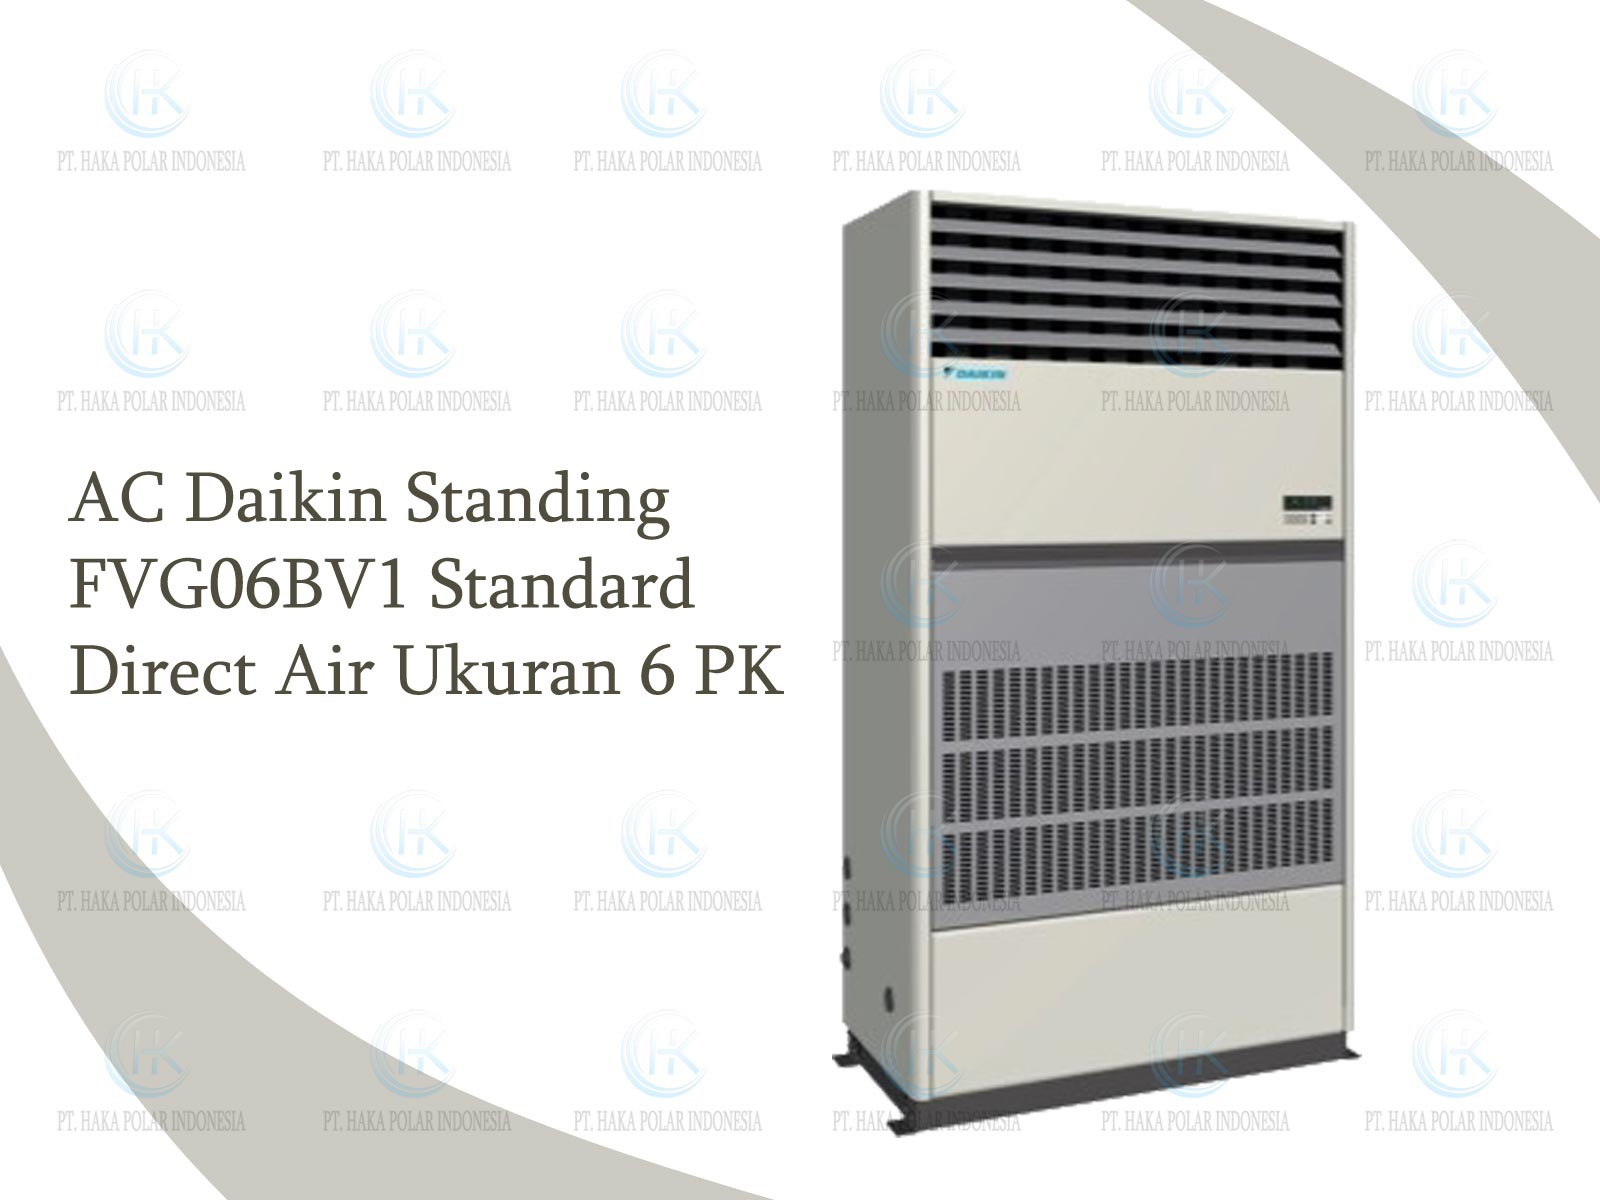 AC Daikin Package FVG06BV1 6 PK Floor Standing Standard Direct Air